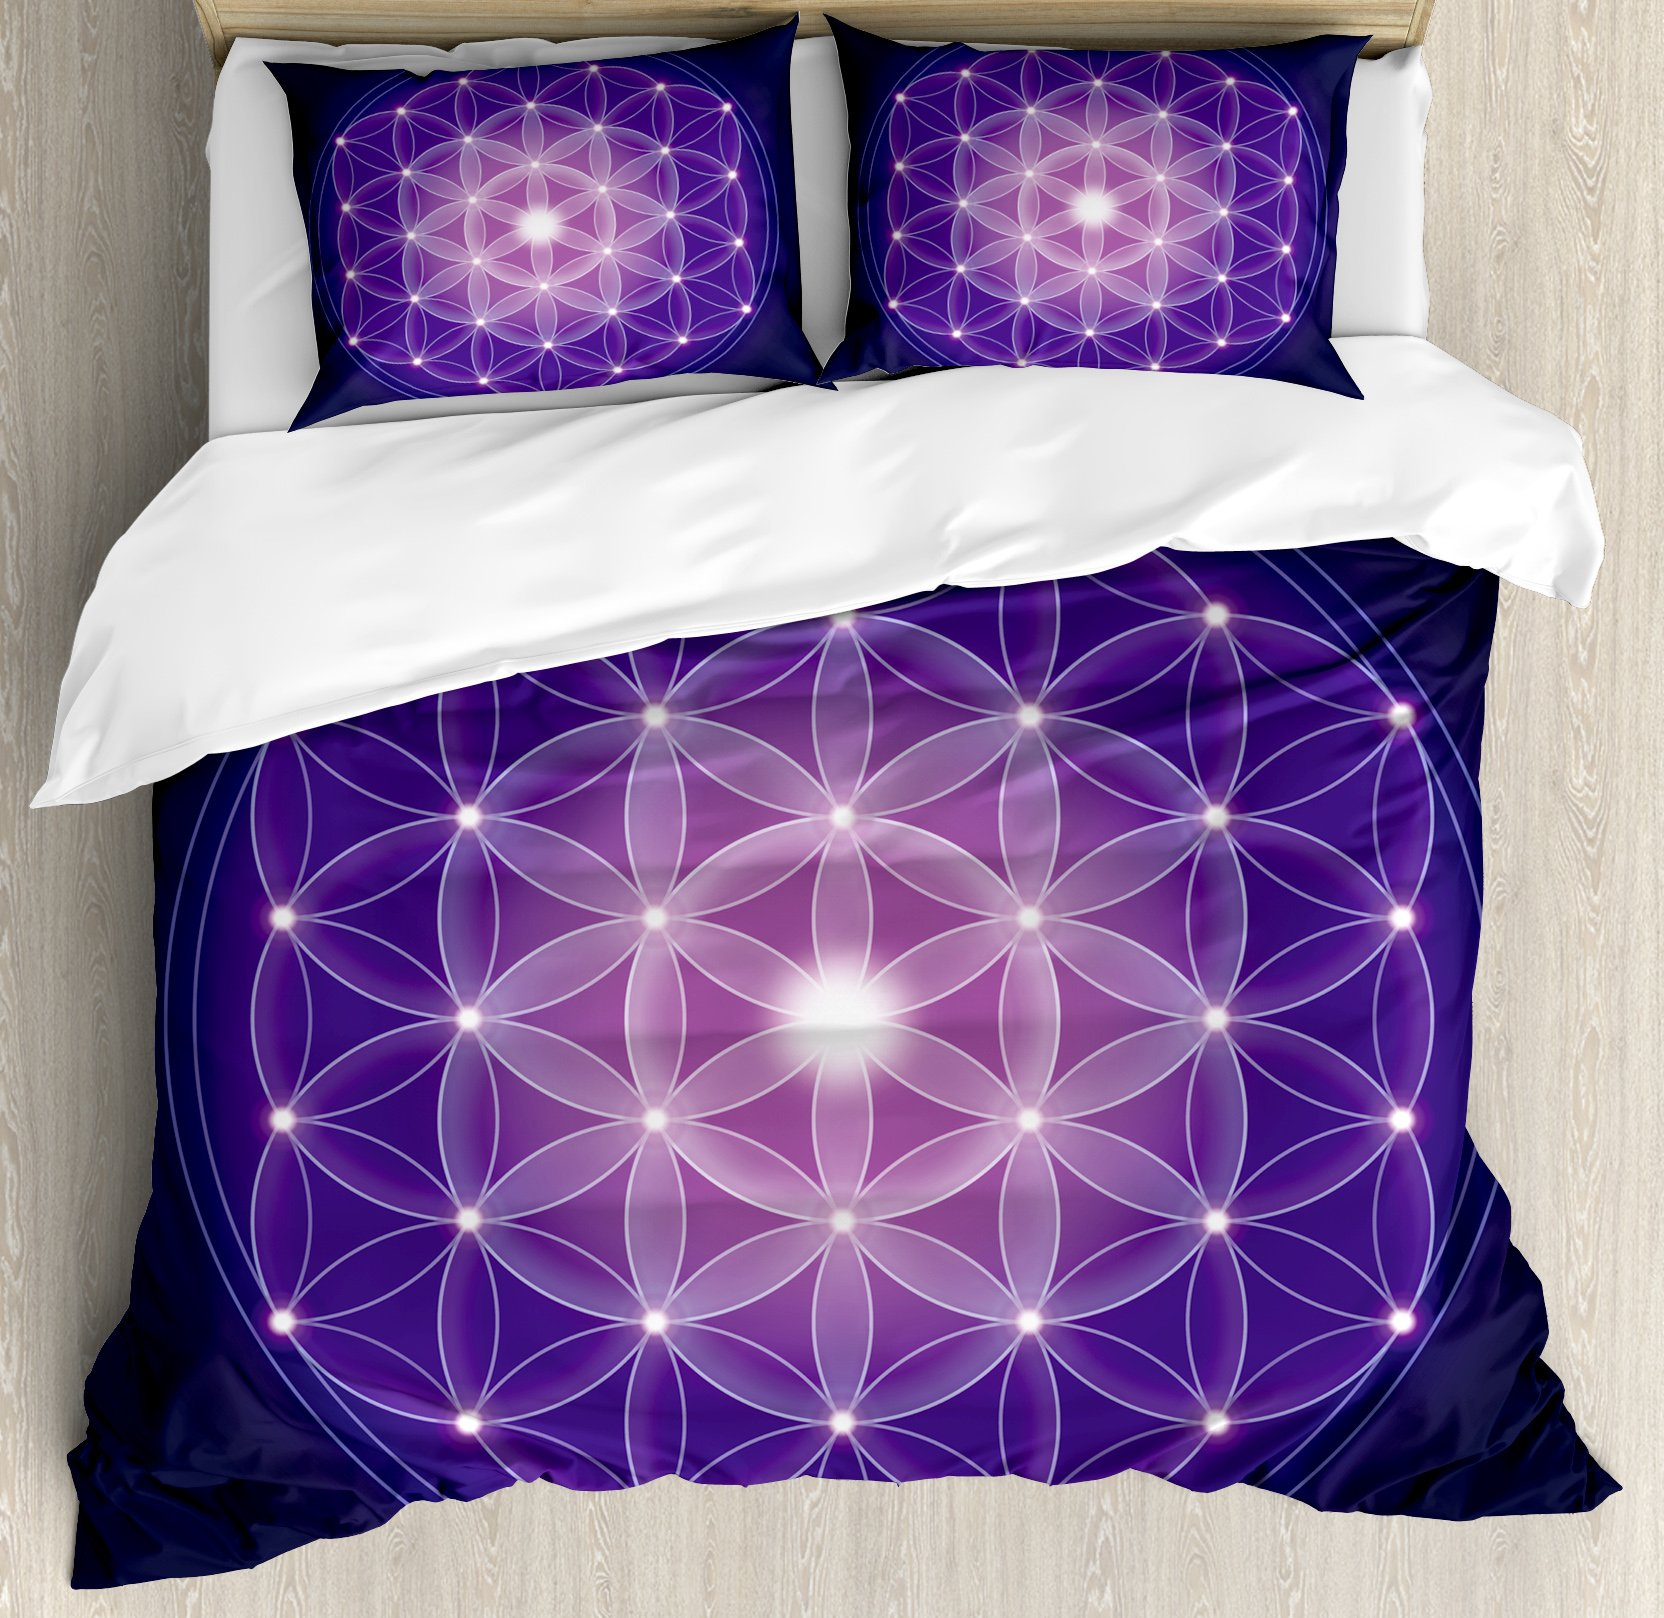 Ambesonne Dark Blue Duvet Cover Set by, Flower of Life with Stars Spiritual Symbol Sacred Geometry Ancient, 3 Piece Bedding Set with Pillow Shams, Queen/Full, Dark Blue Pink Purple